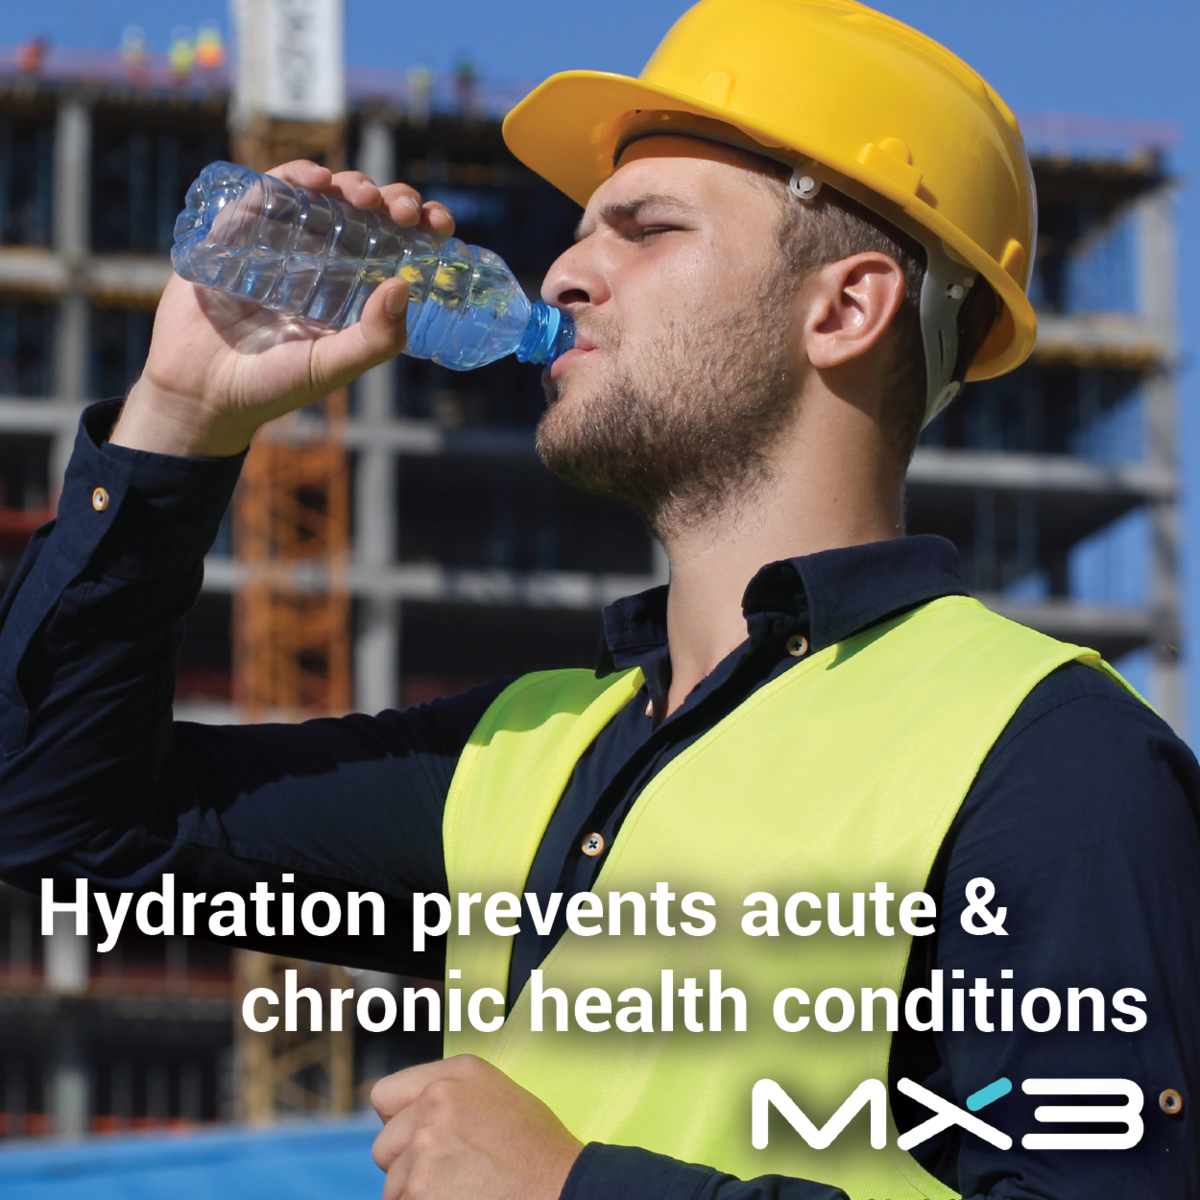 Hydration prevents acute & chronic health conditions